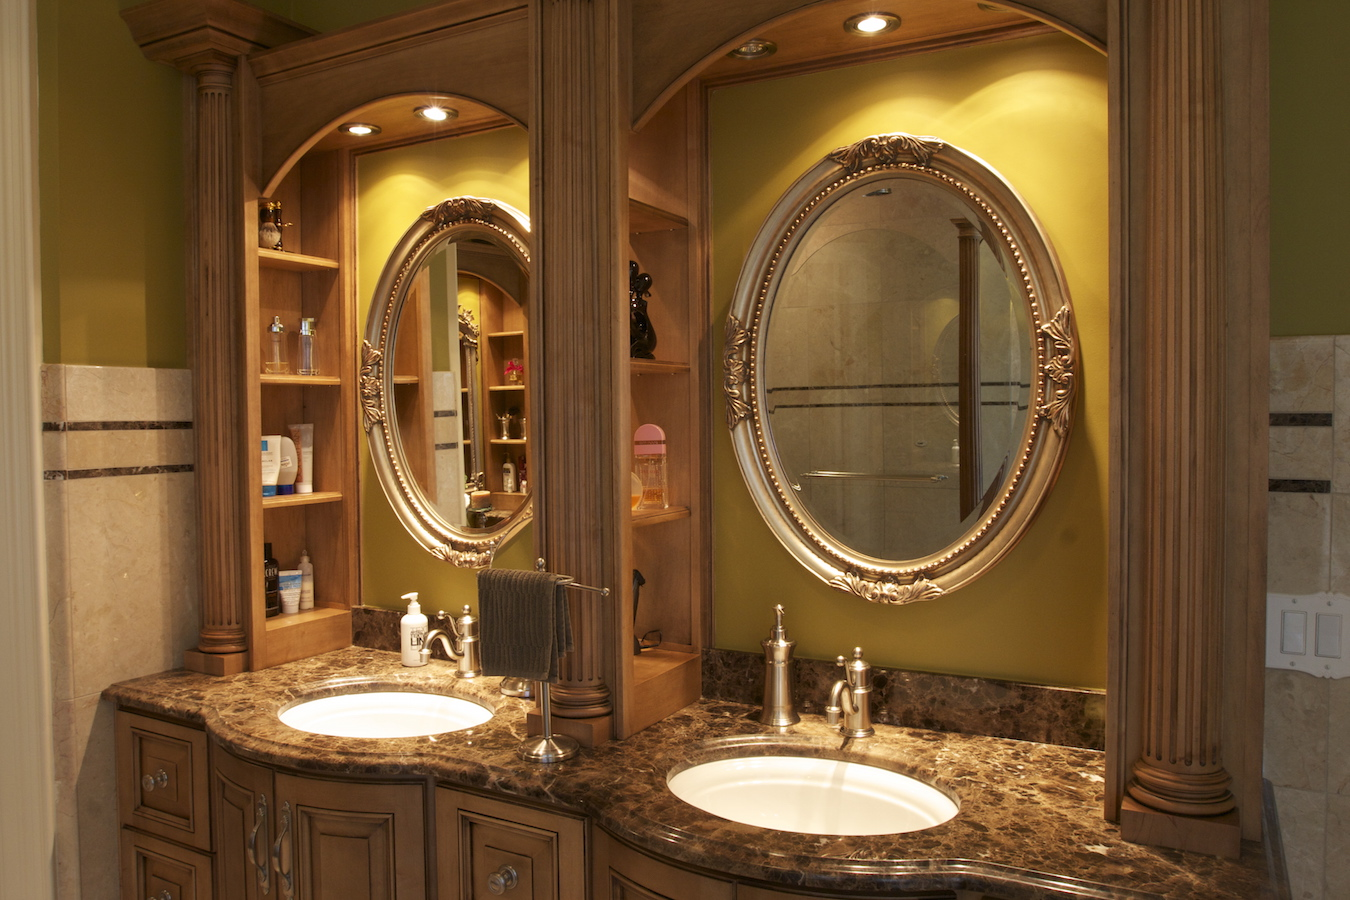 Custom Bathroom Vanities Designs kitchen cabinets and bathroom vanity design | chicago closets